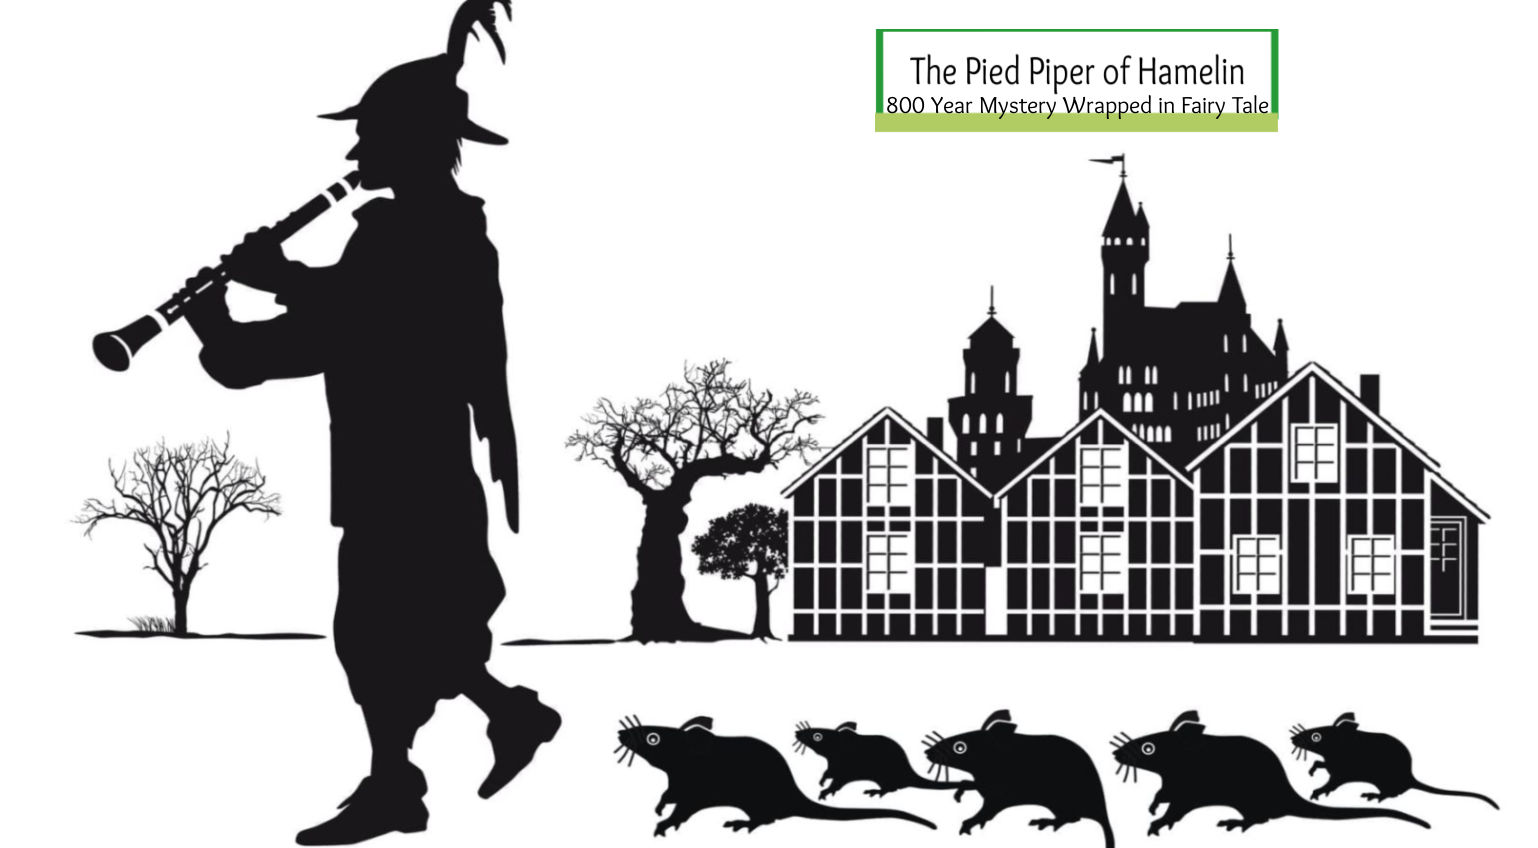 The Pied Piper of Hamelin Story-800 Year Mystery Wrapped in Fairy Tale